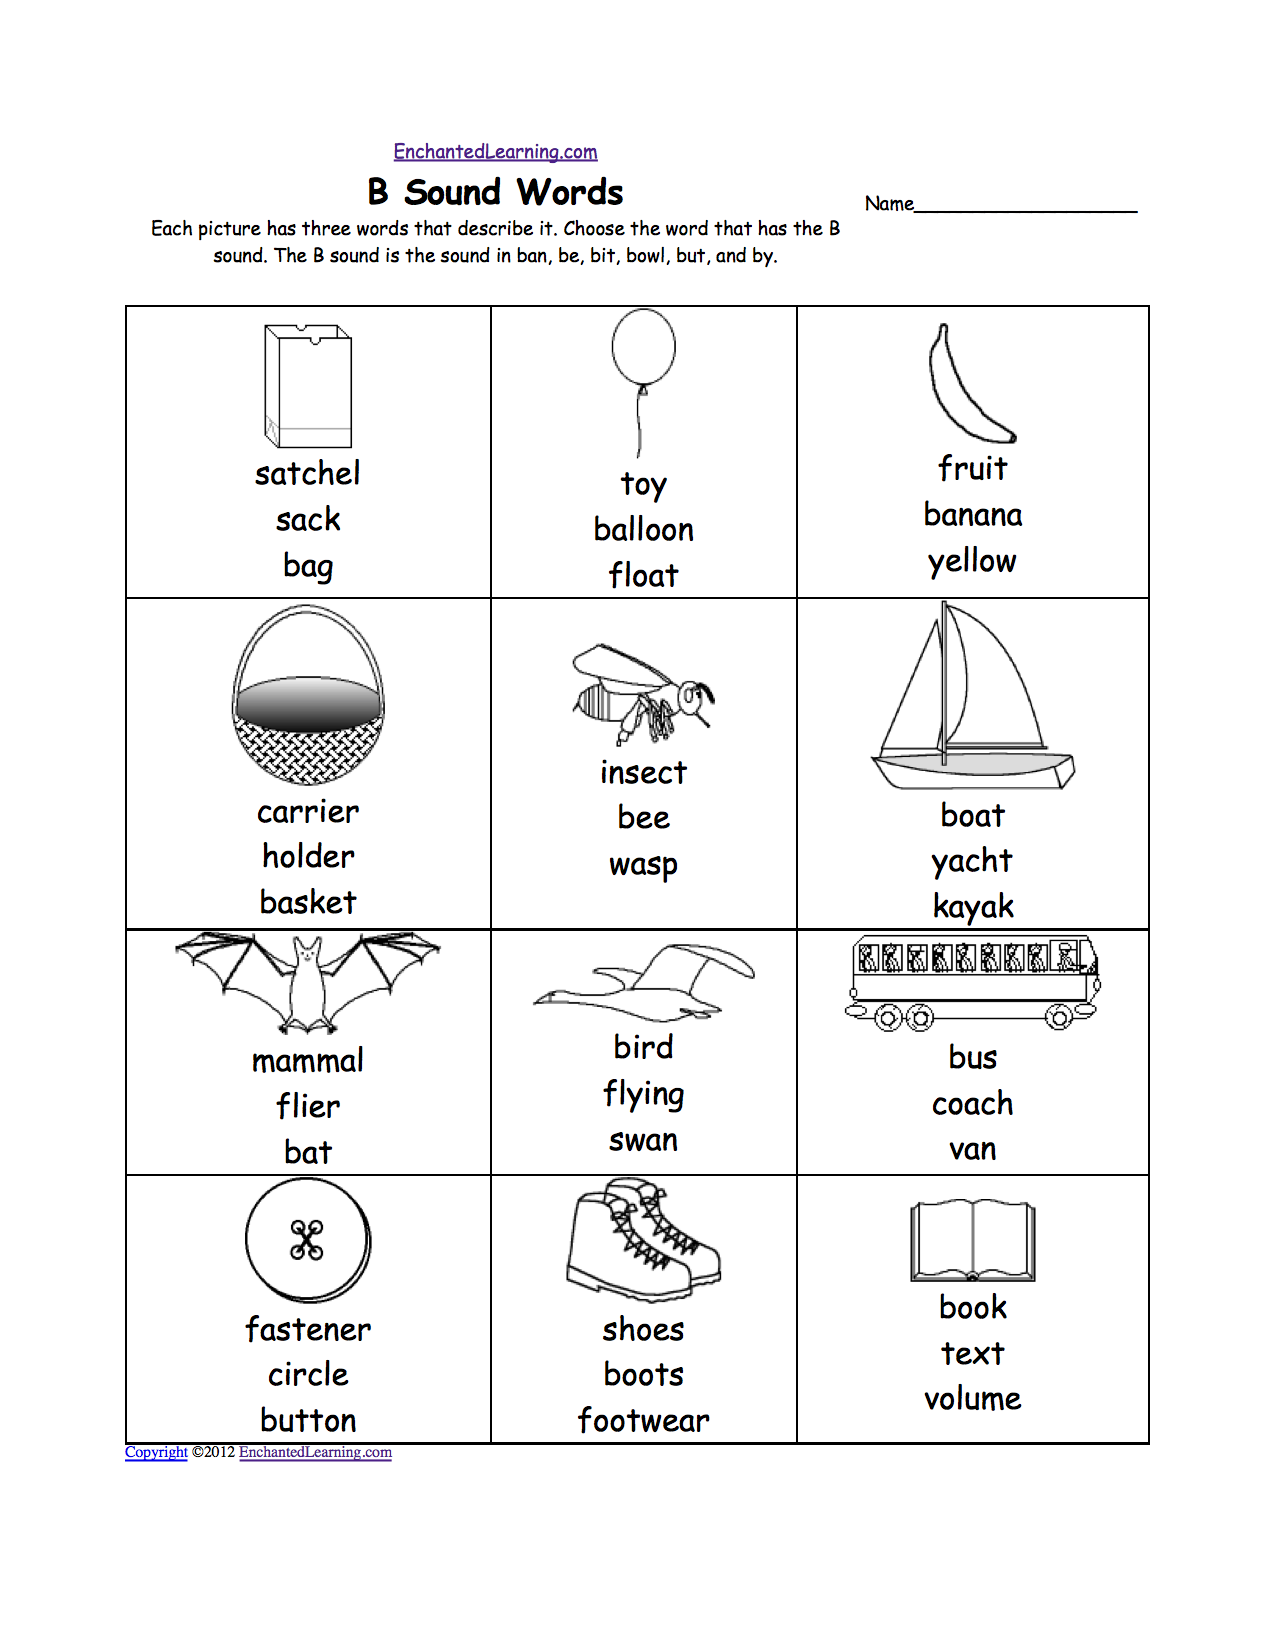 Weirdmailus  Surprising Phonics Worksheets Multiple Choice Worksheets To Print  With Magnificent Quotbquot Sound Phonics Worksheet Multiple Choice Each Picture Has Three Words That Describe It Choose The Word That Has A Quotbquot Sound The Quotbquot Sound Is The Sound  With Breathtaking Kingdom Classification Worksheet Answers Also Mole Mass Conversions Worksheet In Addition Retirement Planning Worksheet And Drama Worksheets As Well As Polyatomic Ions Worksheet Answers Additionally Ez Worksheet From Enchantedlearningcom With Weirdmailus  Magnificent Phonics Worksheets Multiple Choice Worksheets To Print  With Breathtaking Quotbquot Sound Phonics Worksheet Multiple Choice Each Picture Has Three Words That Describe It Choose The Word That Has A Quotbquot Sound The Quotbquot Sound Is The Sound  And Surprising Kingdom Classification Worksheet Answers Also Mole Mass Conversions Worksheet In Addition Retirement Planning Worksheet From Enchantedlearningcom